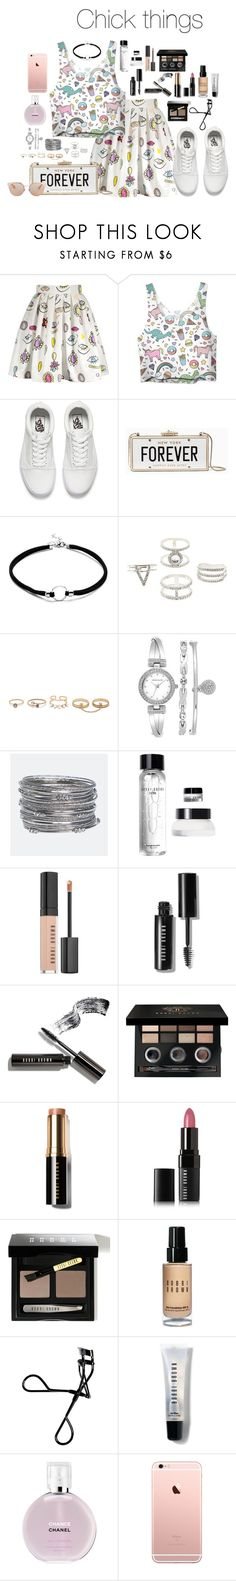 """""""untitled120."""" by hsmklau ❤ liked on Polyvore featuring Vans, Kate Spade, Charlotte Russe, LULUS, Anne Klein, Avenue, Bobbi Brown Cosmetics, Chanel and Christian Dior"""